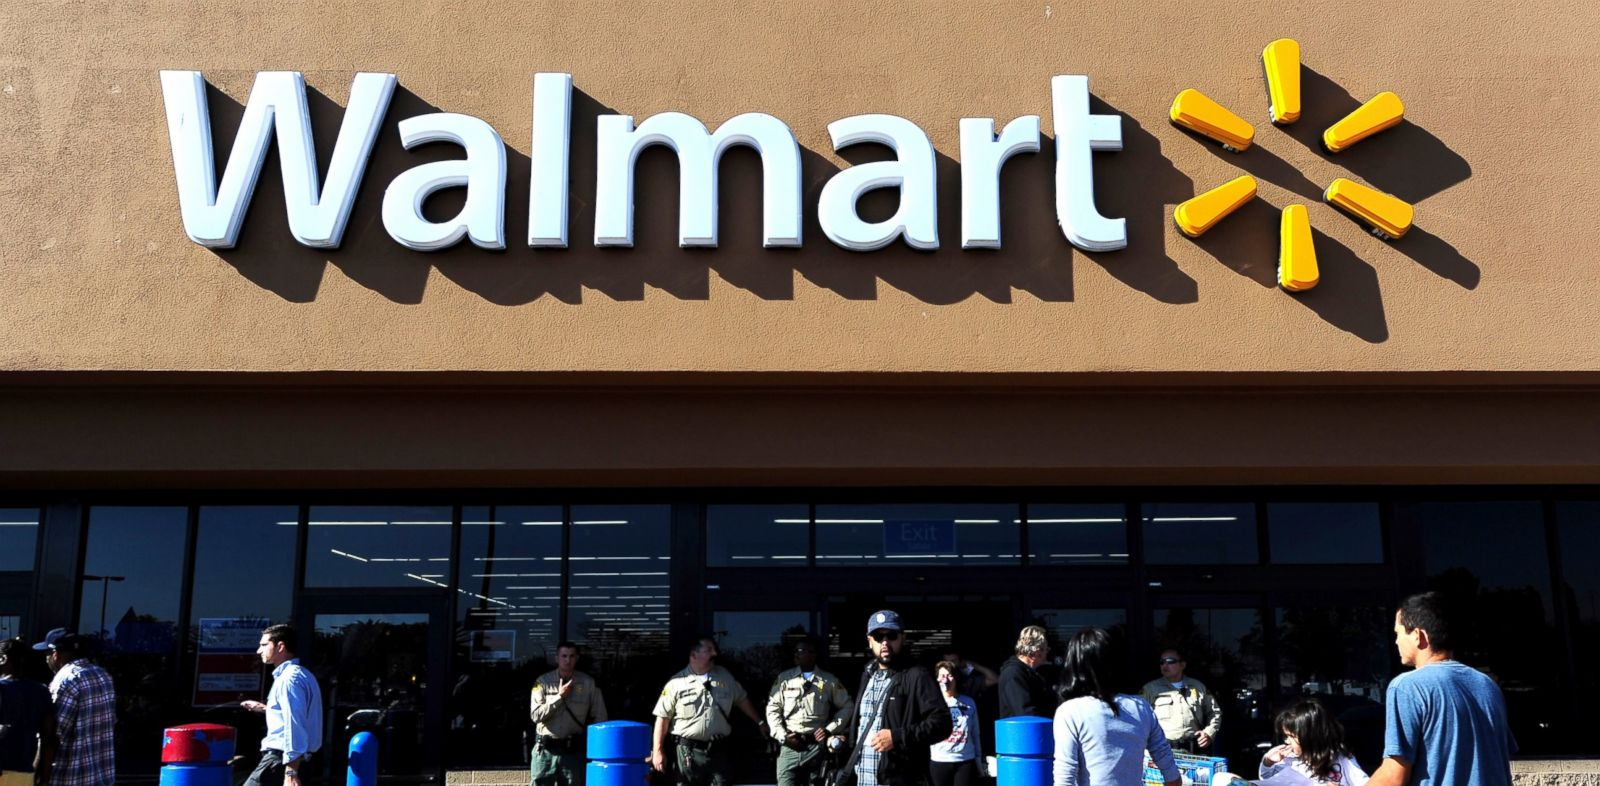 PHOTO: Police man the front of a Walmart store amid heightened Black Friday security in Paramount, Califo., Nov. 23, 2012 as shoppers arrive and Walmart employees and their supoorters protested nearby.